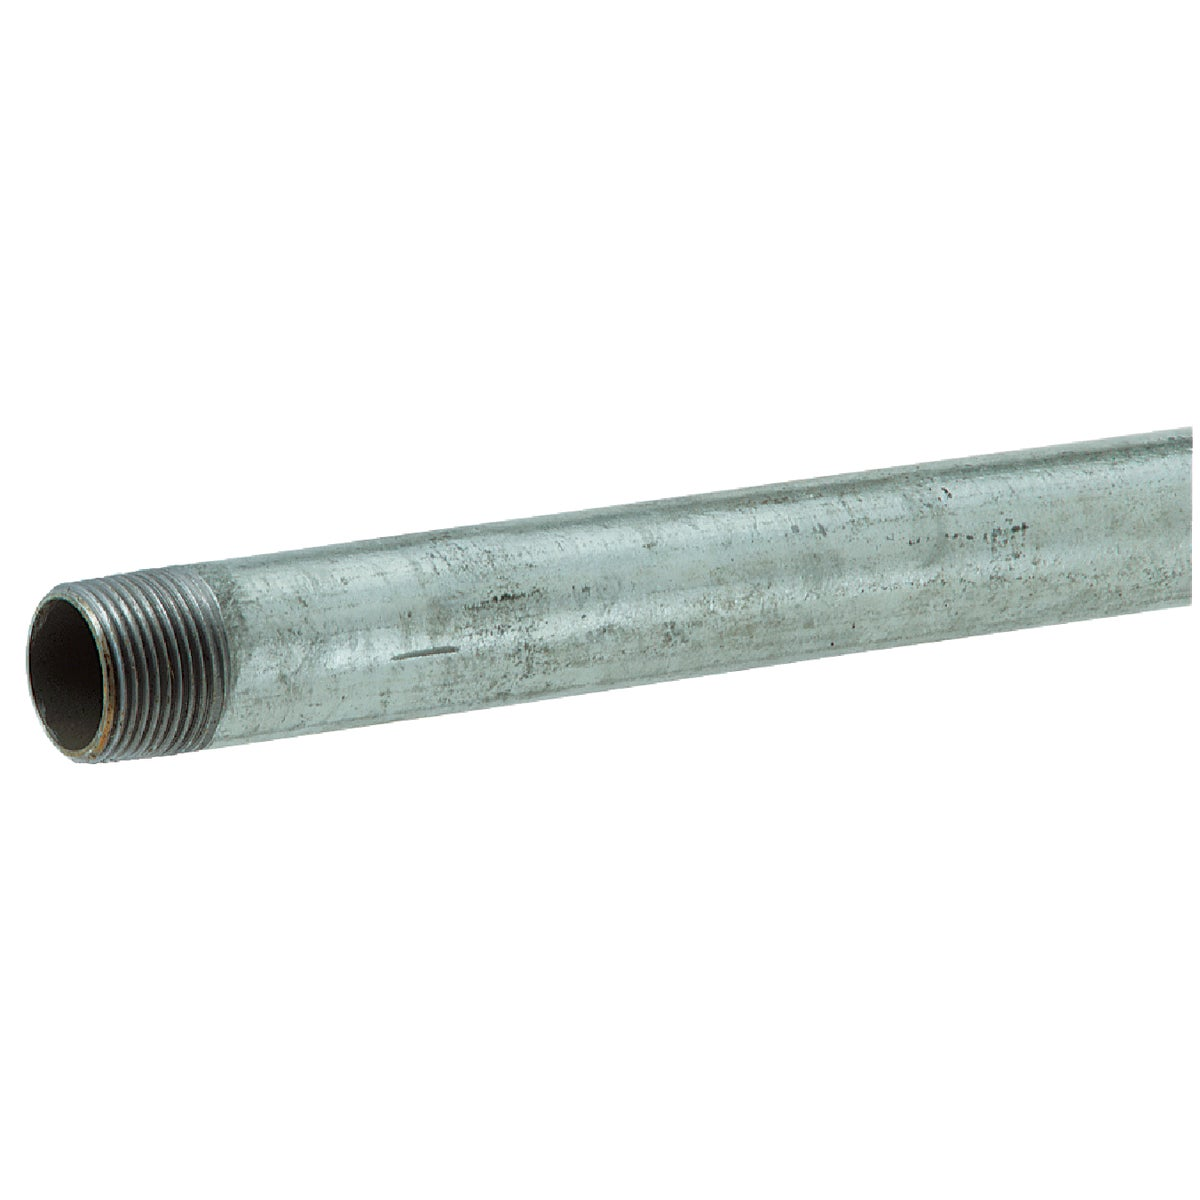 1X30 GALV RDI-CT PIPE